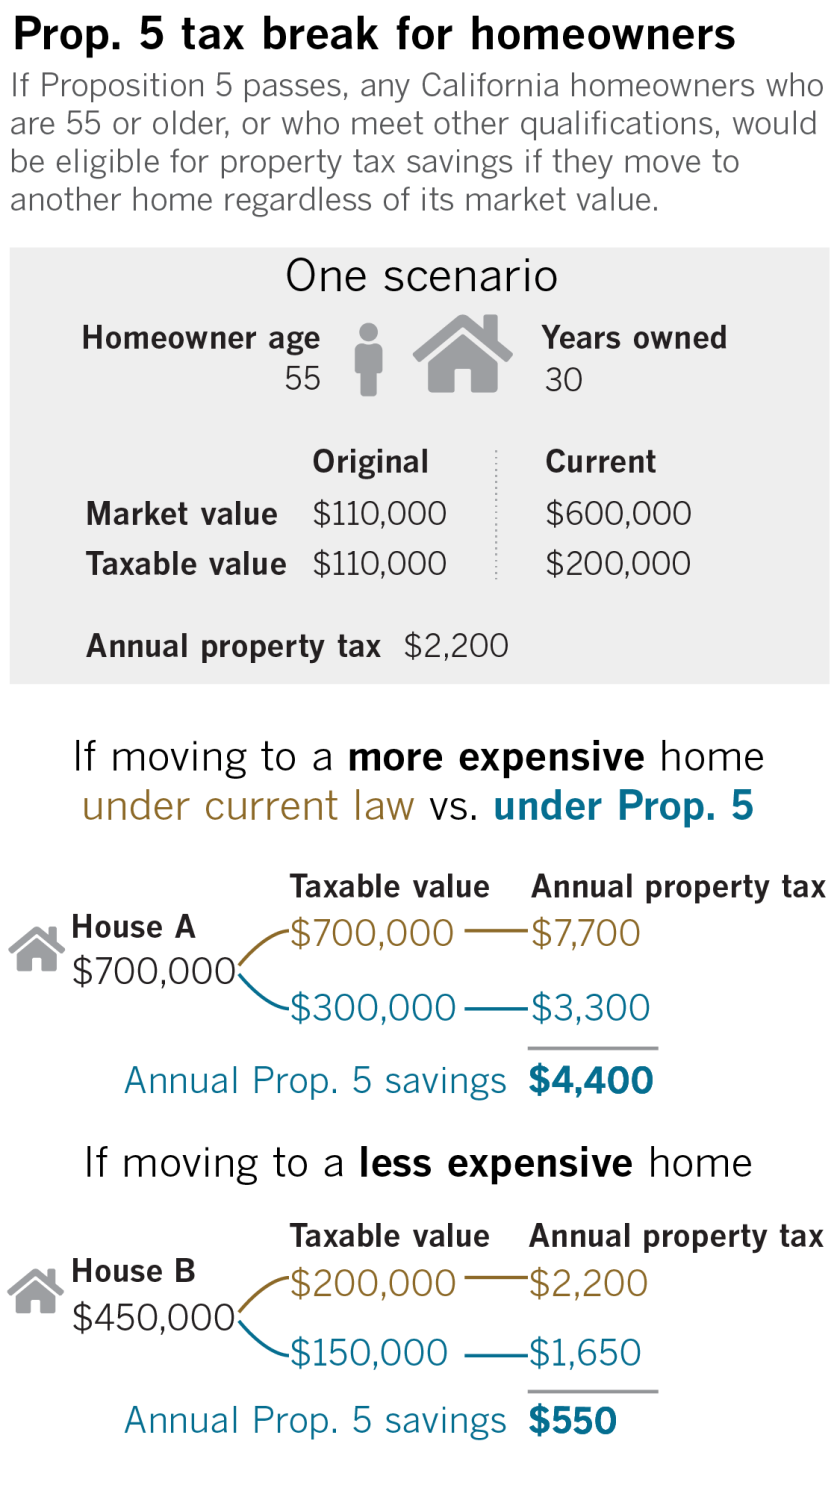 la-pol-ca-prop-g-5-housing-tax-break-20181011